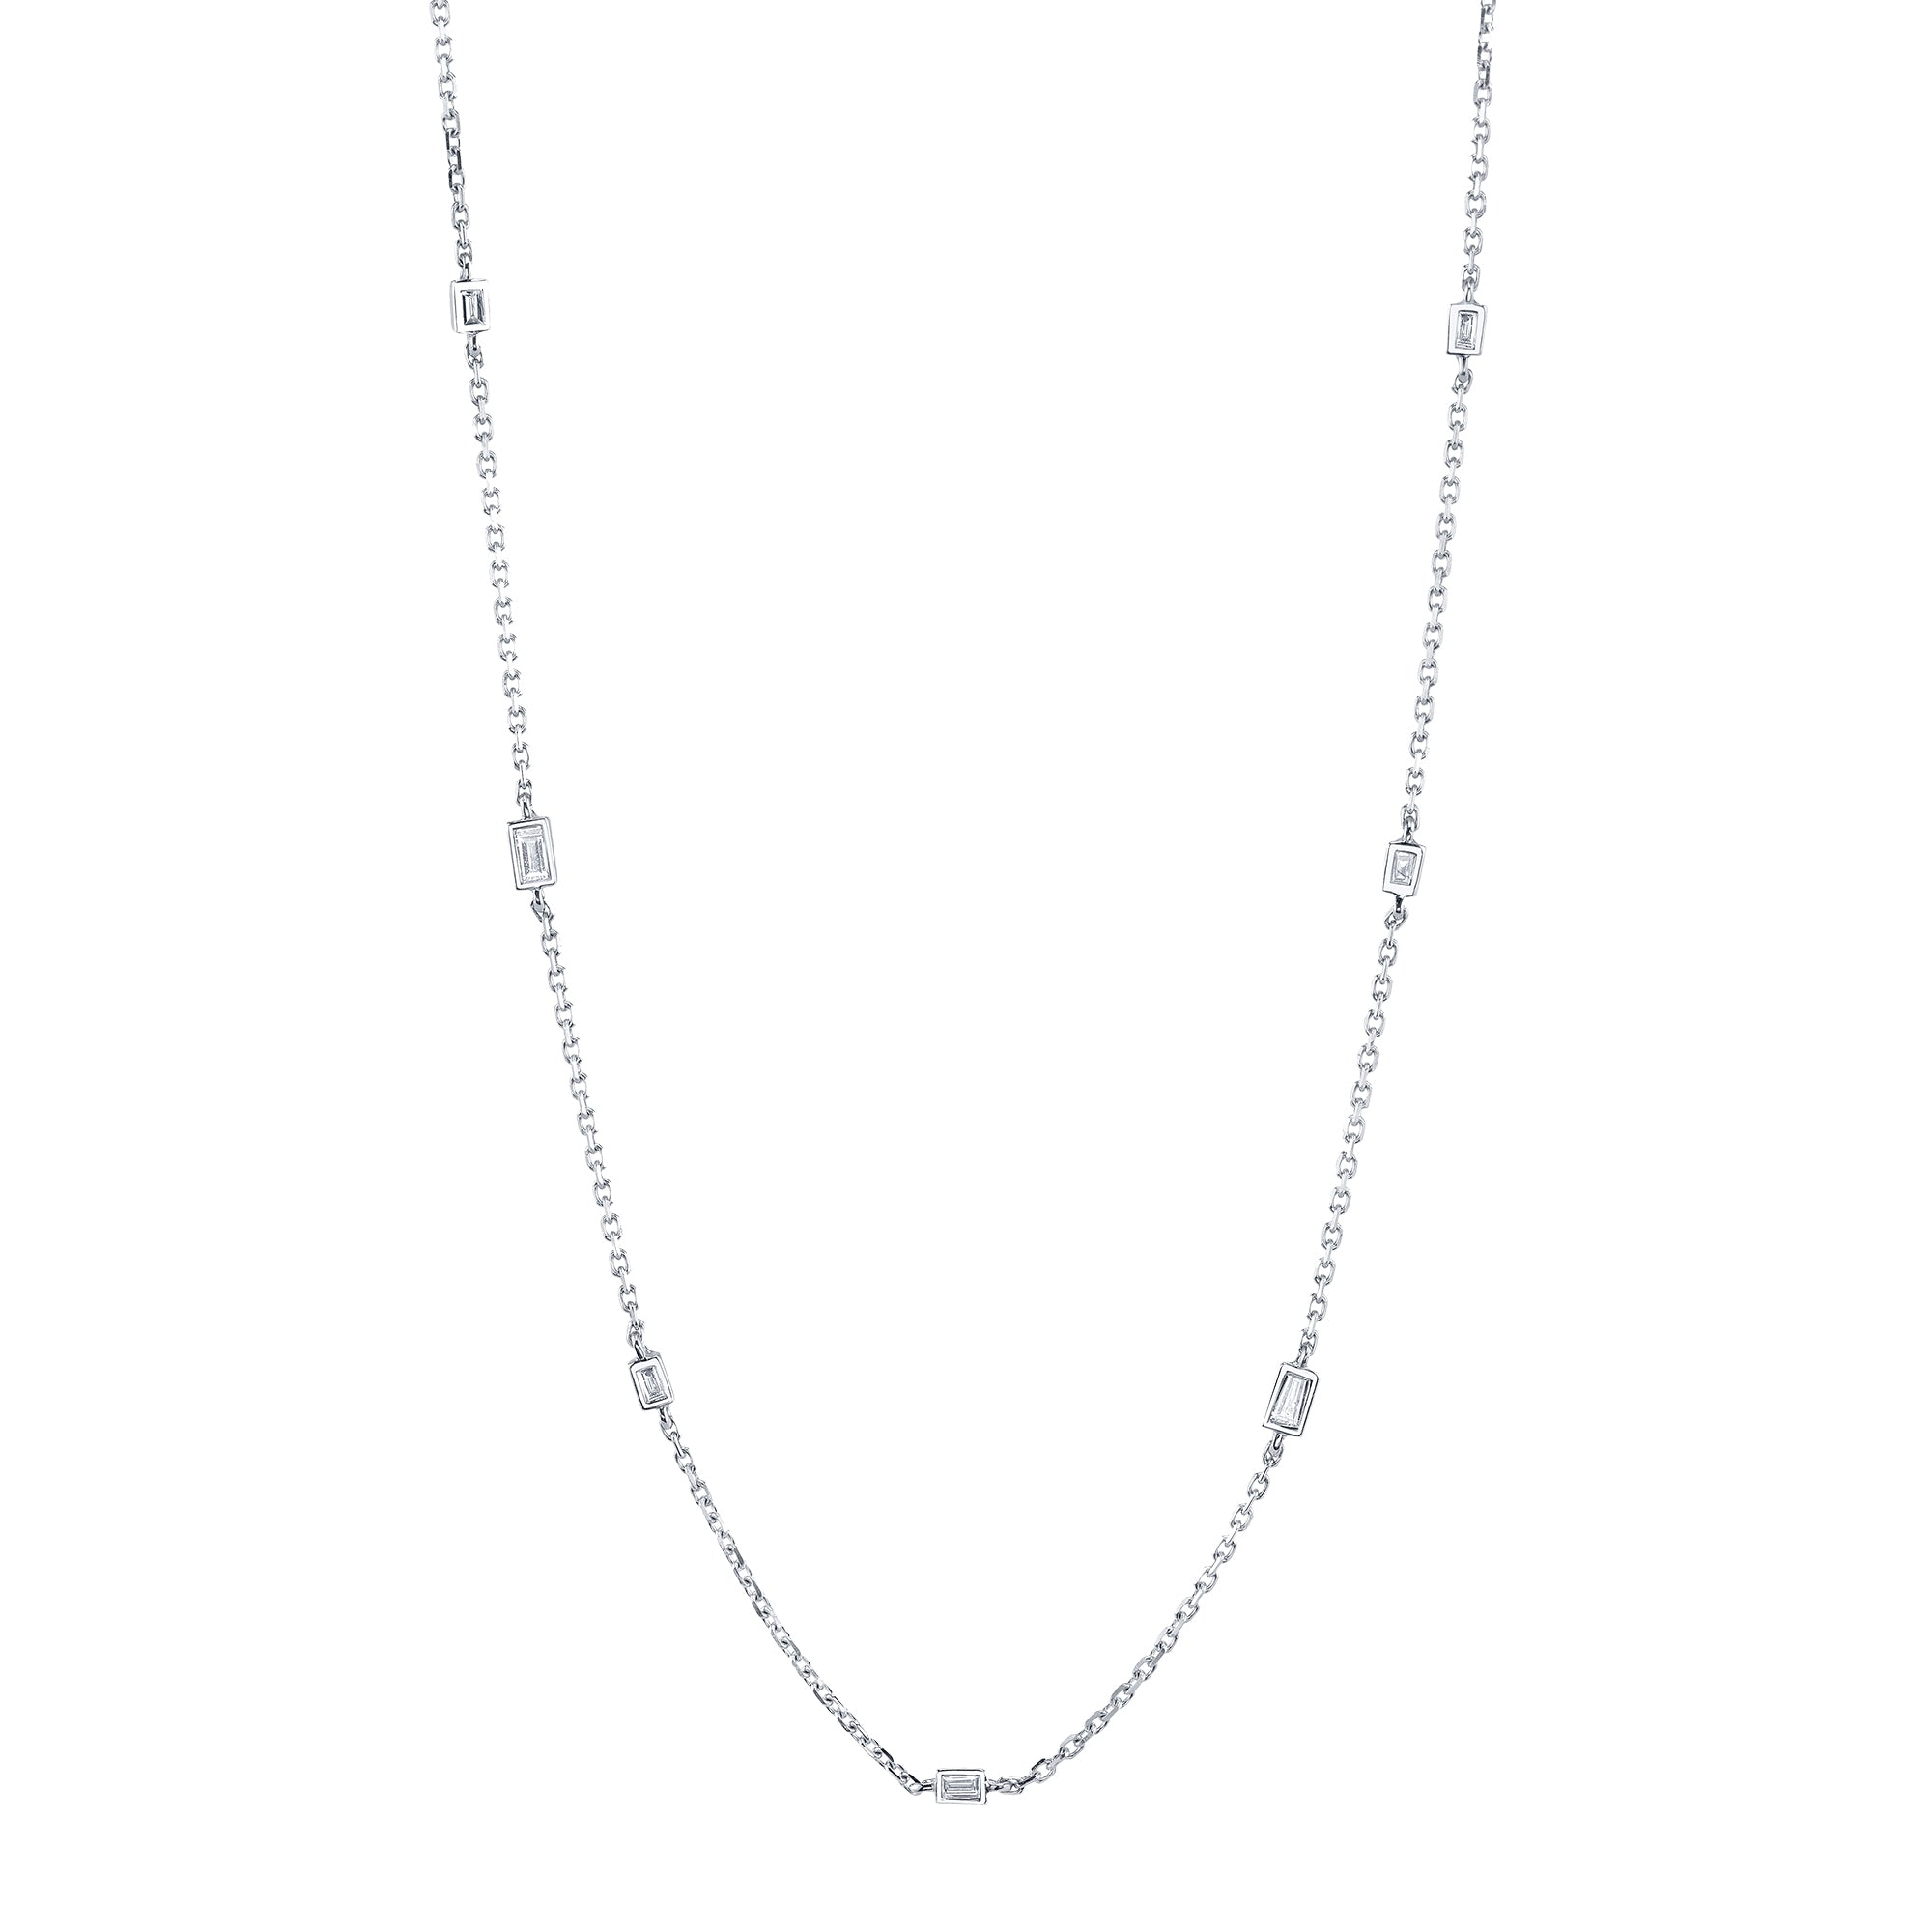 Gold & White Baguette Chain Necklace by Borgioni for Broken English Jewelry